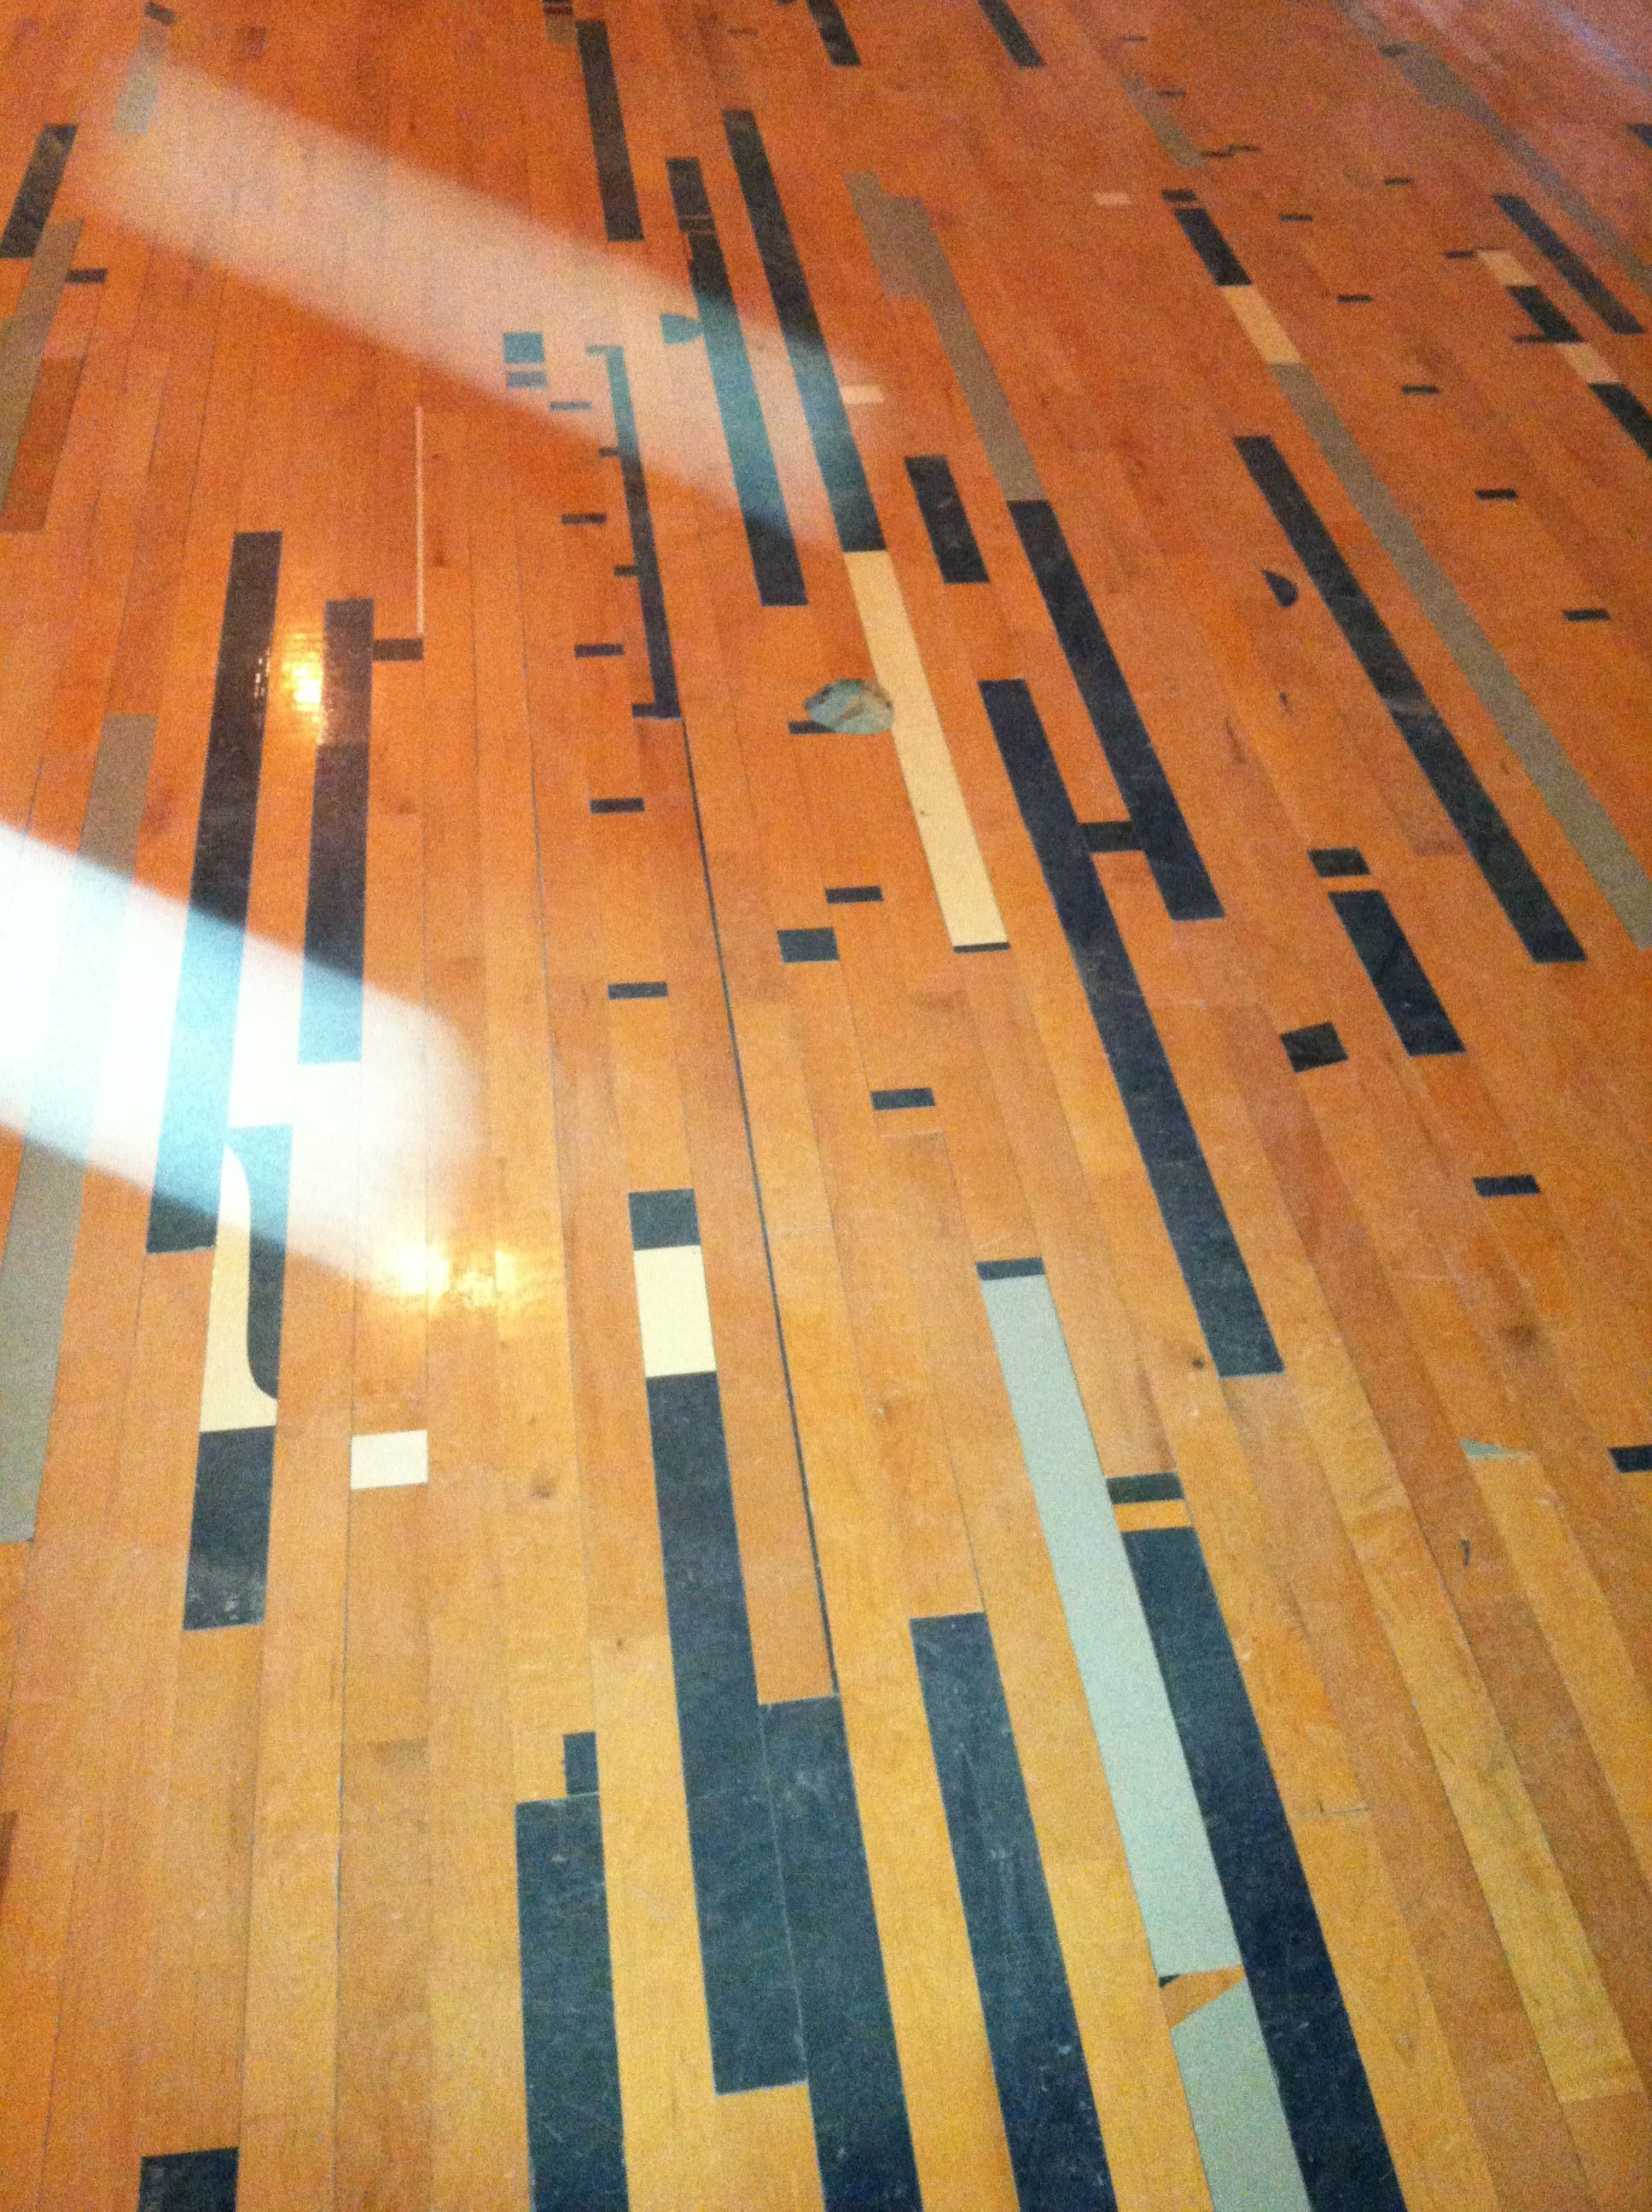 went coffee projects on woodworks treasure they img spots i ended discovered reclaimed for another one start and hunt as up favorite had of at my tables floor inspiration that gym recently most fermata